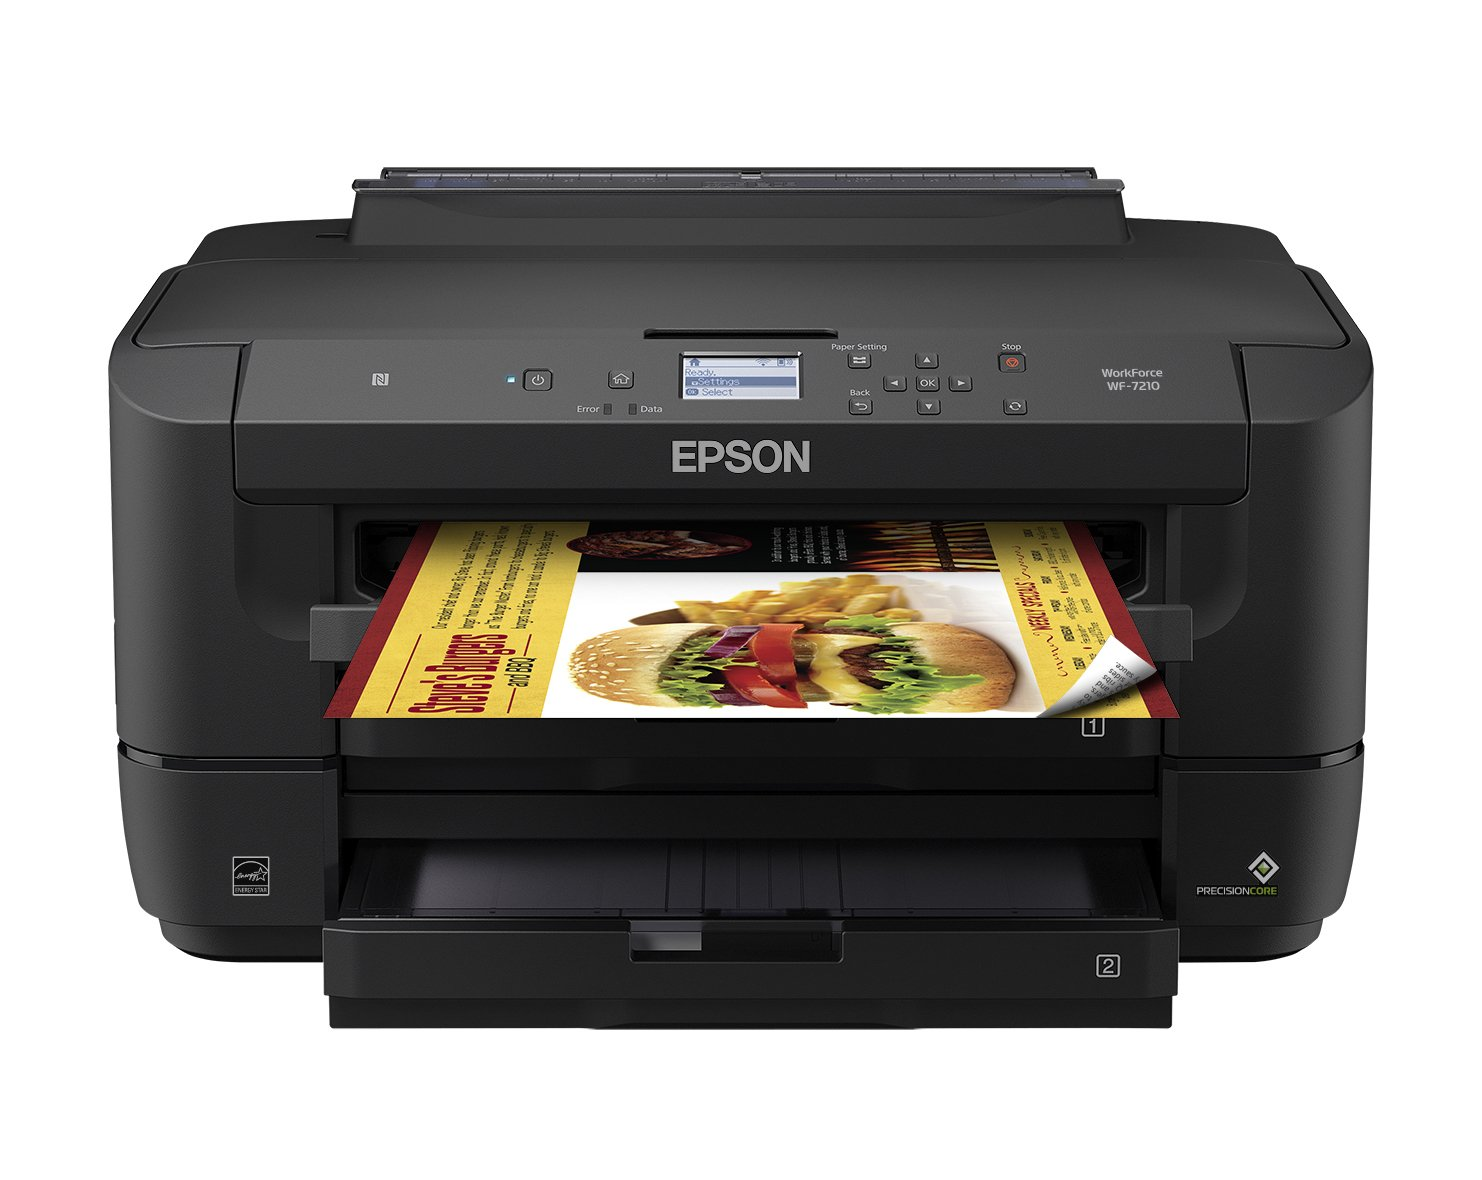 Workforce WF-7210 Wireless Wide-Format Color Inkjet Printer with Wi-Fi Direct and Ethernet, Amazon Dash Replenishment Enabled by Epson (Image #1)